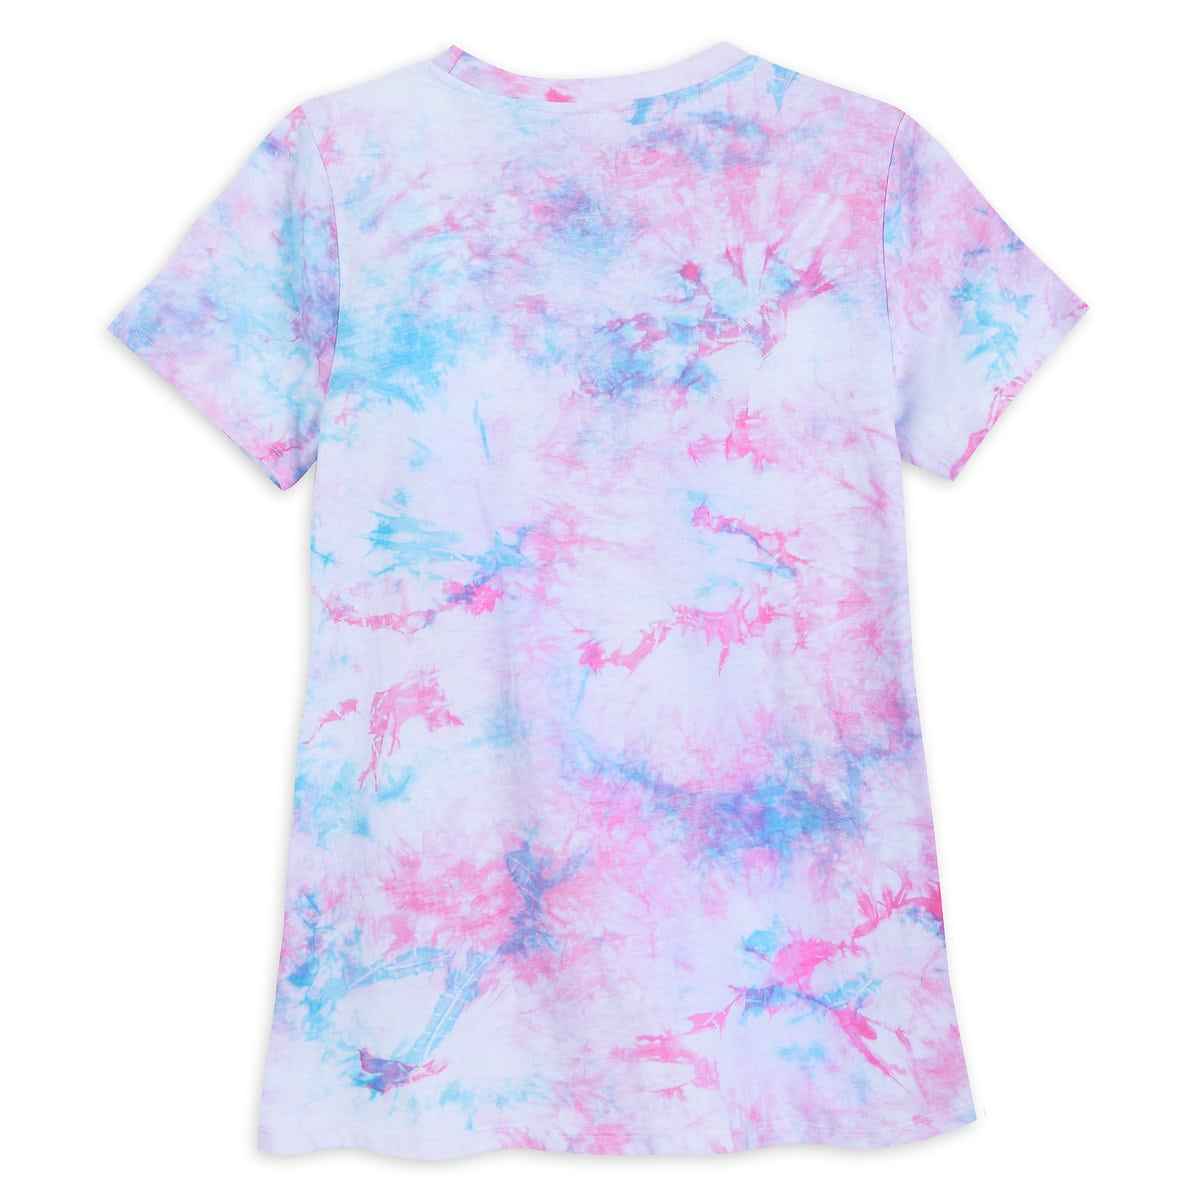 90282dd6c400d8 Product Image of Aurora Reversible Sequin Tie-Dye T-Shirt for Women -  Sleeping